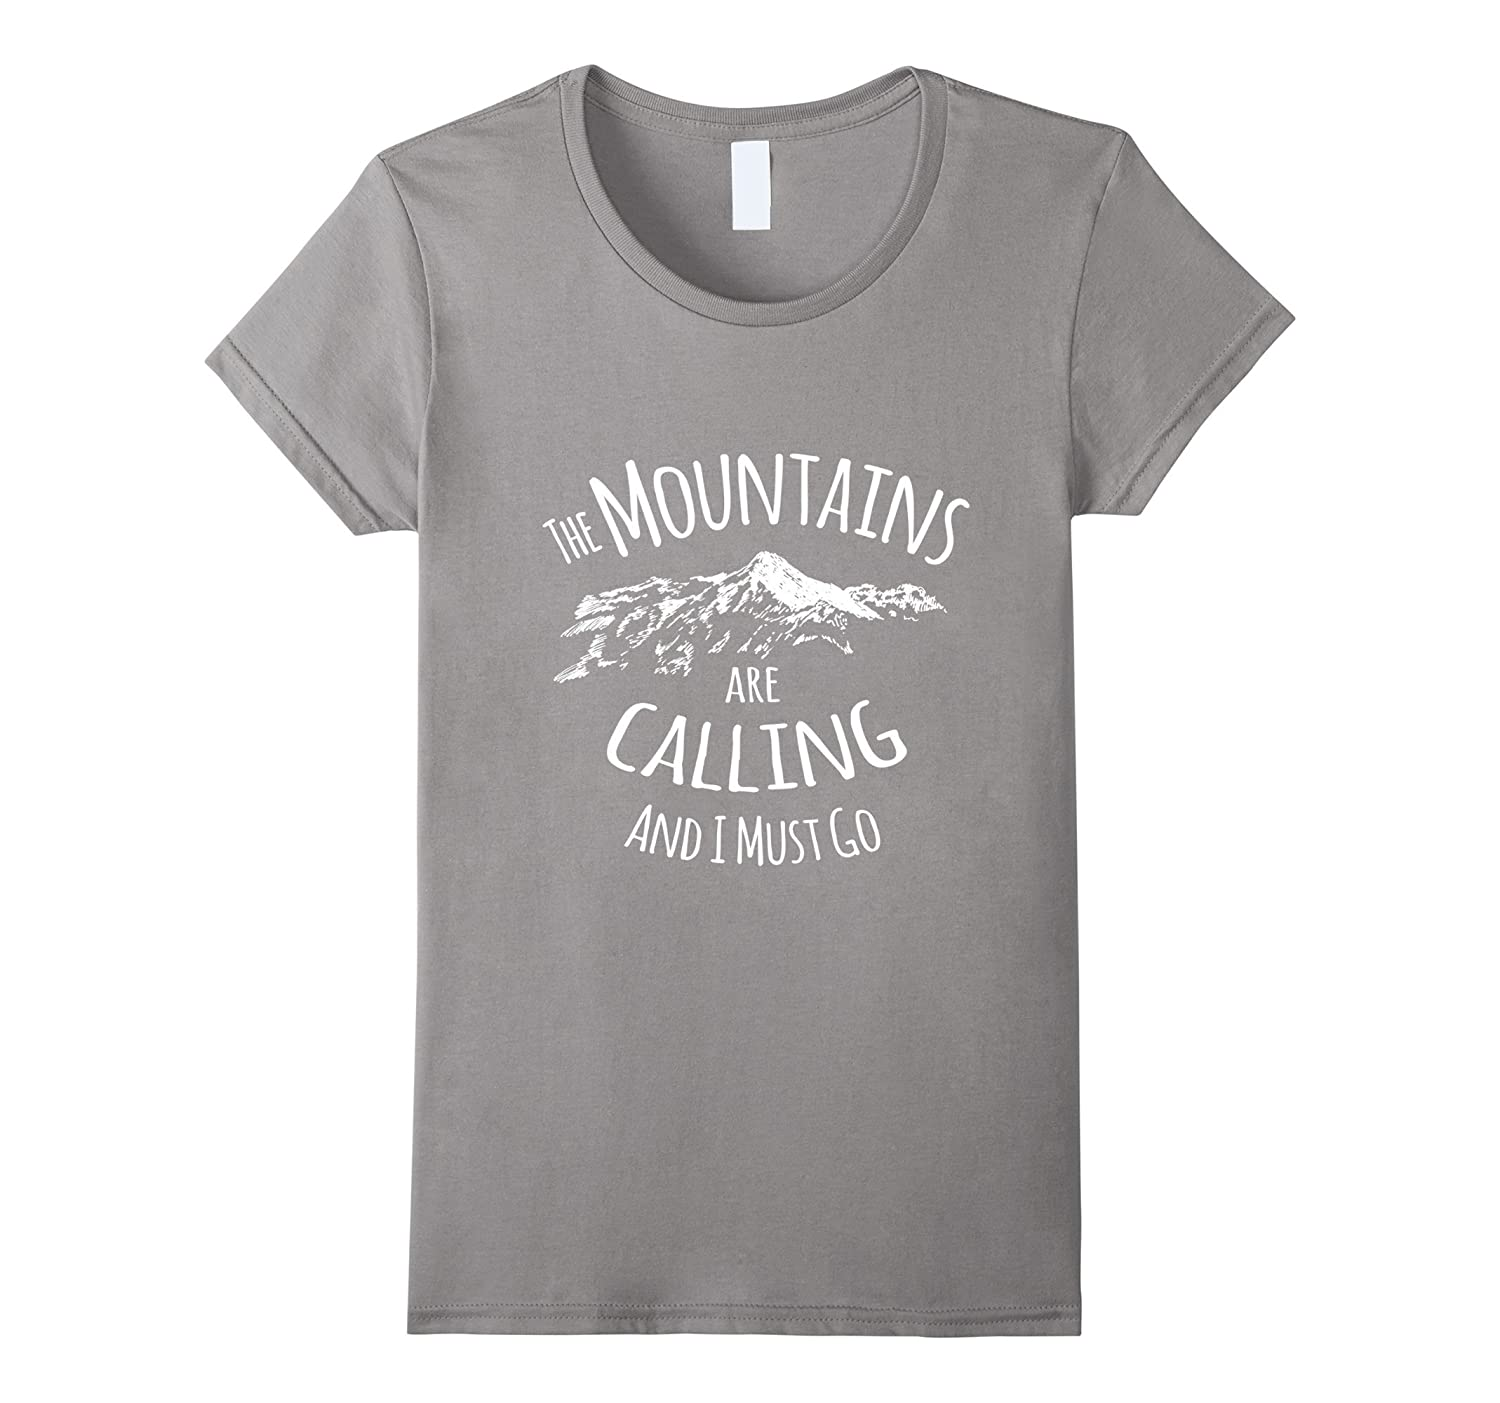 The Mountains Are Calling and I Must Go Outdoors Tee